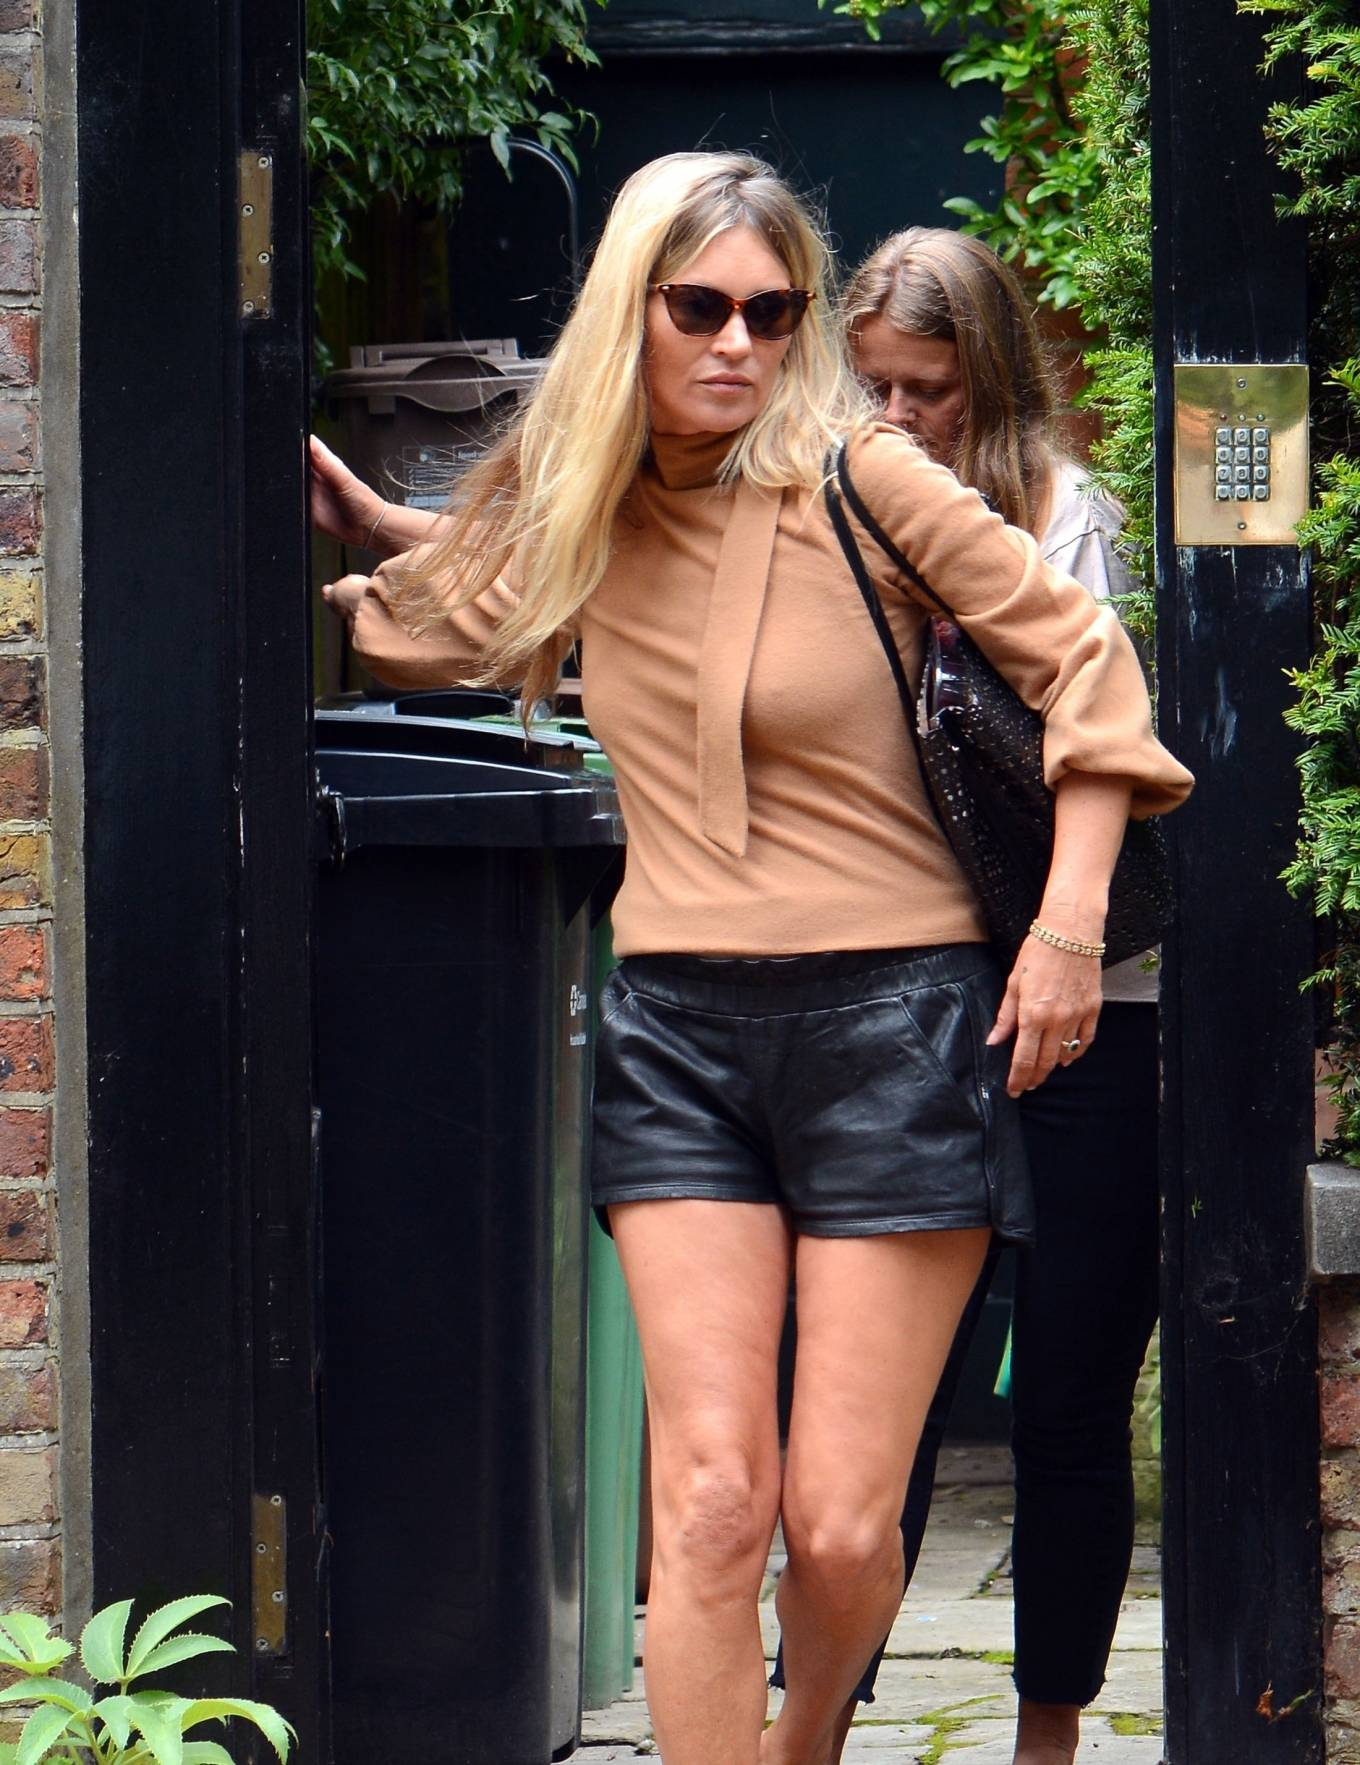 Kate Moss donning Skimpy black leather high rise shorts with side pockets and a leather fabric